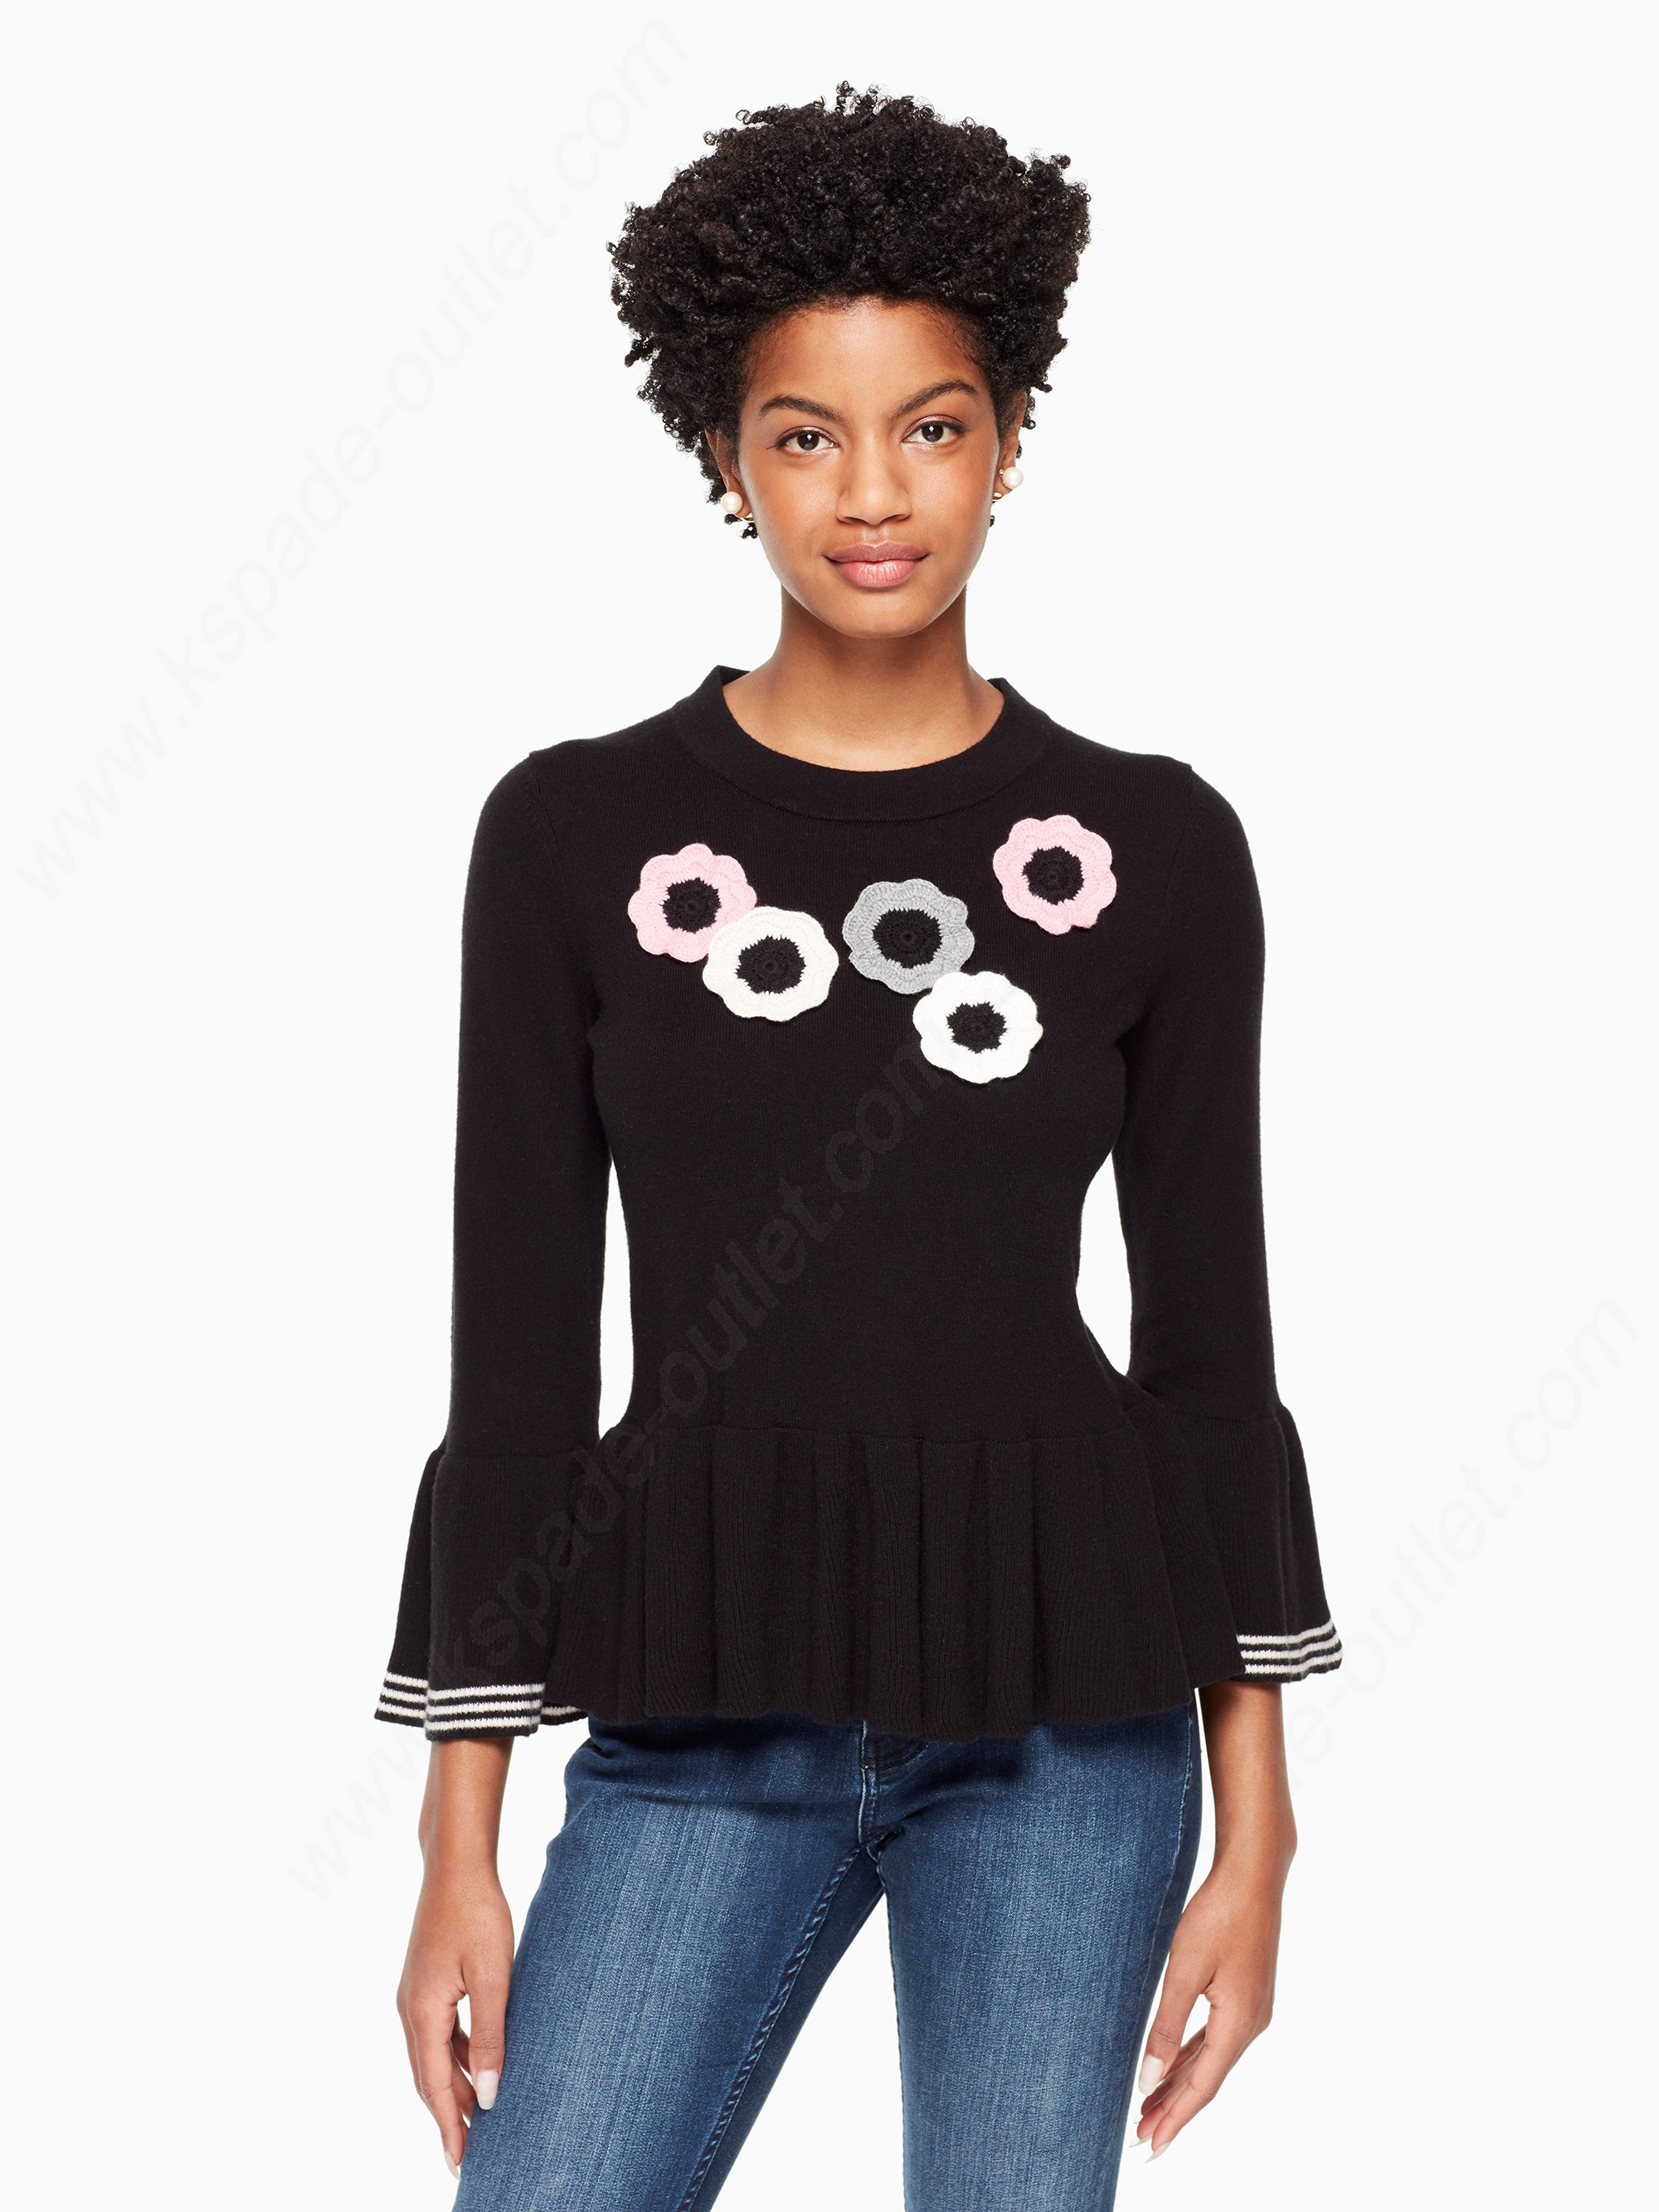 Kate Spade Woman Clothing Crochet Flower Bell Sweater - Kate Spade Woman Clothing Crochet Flower Bell Sweater